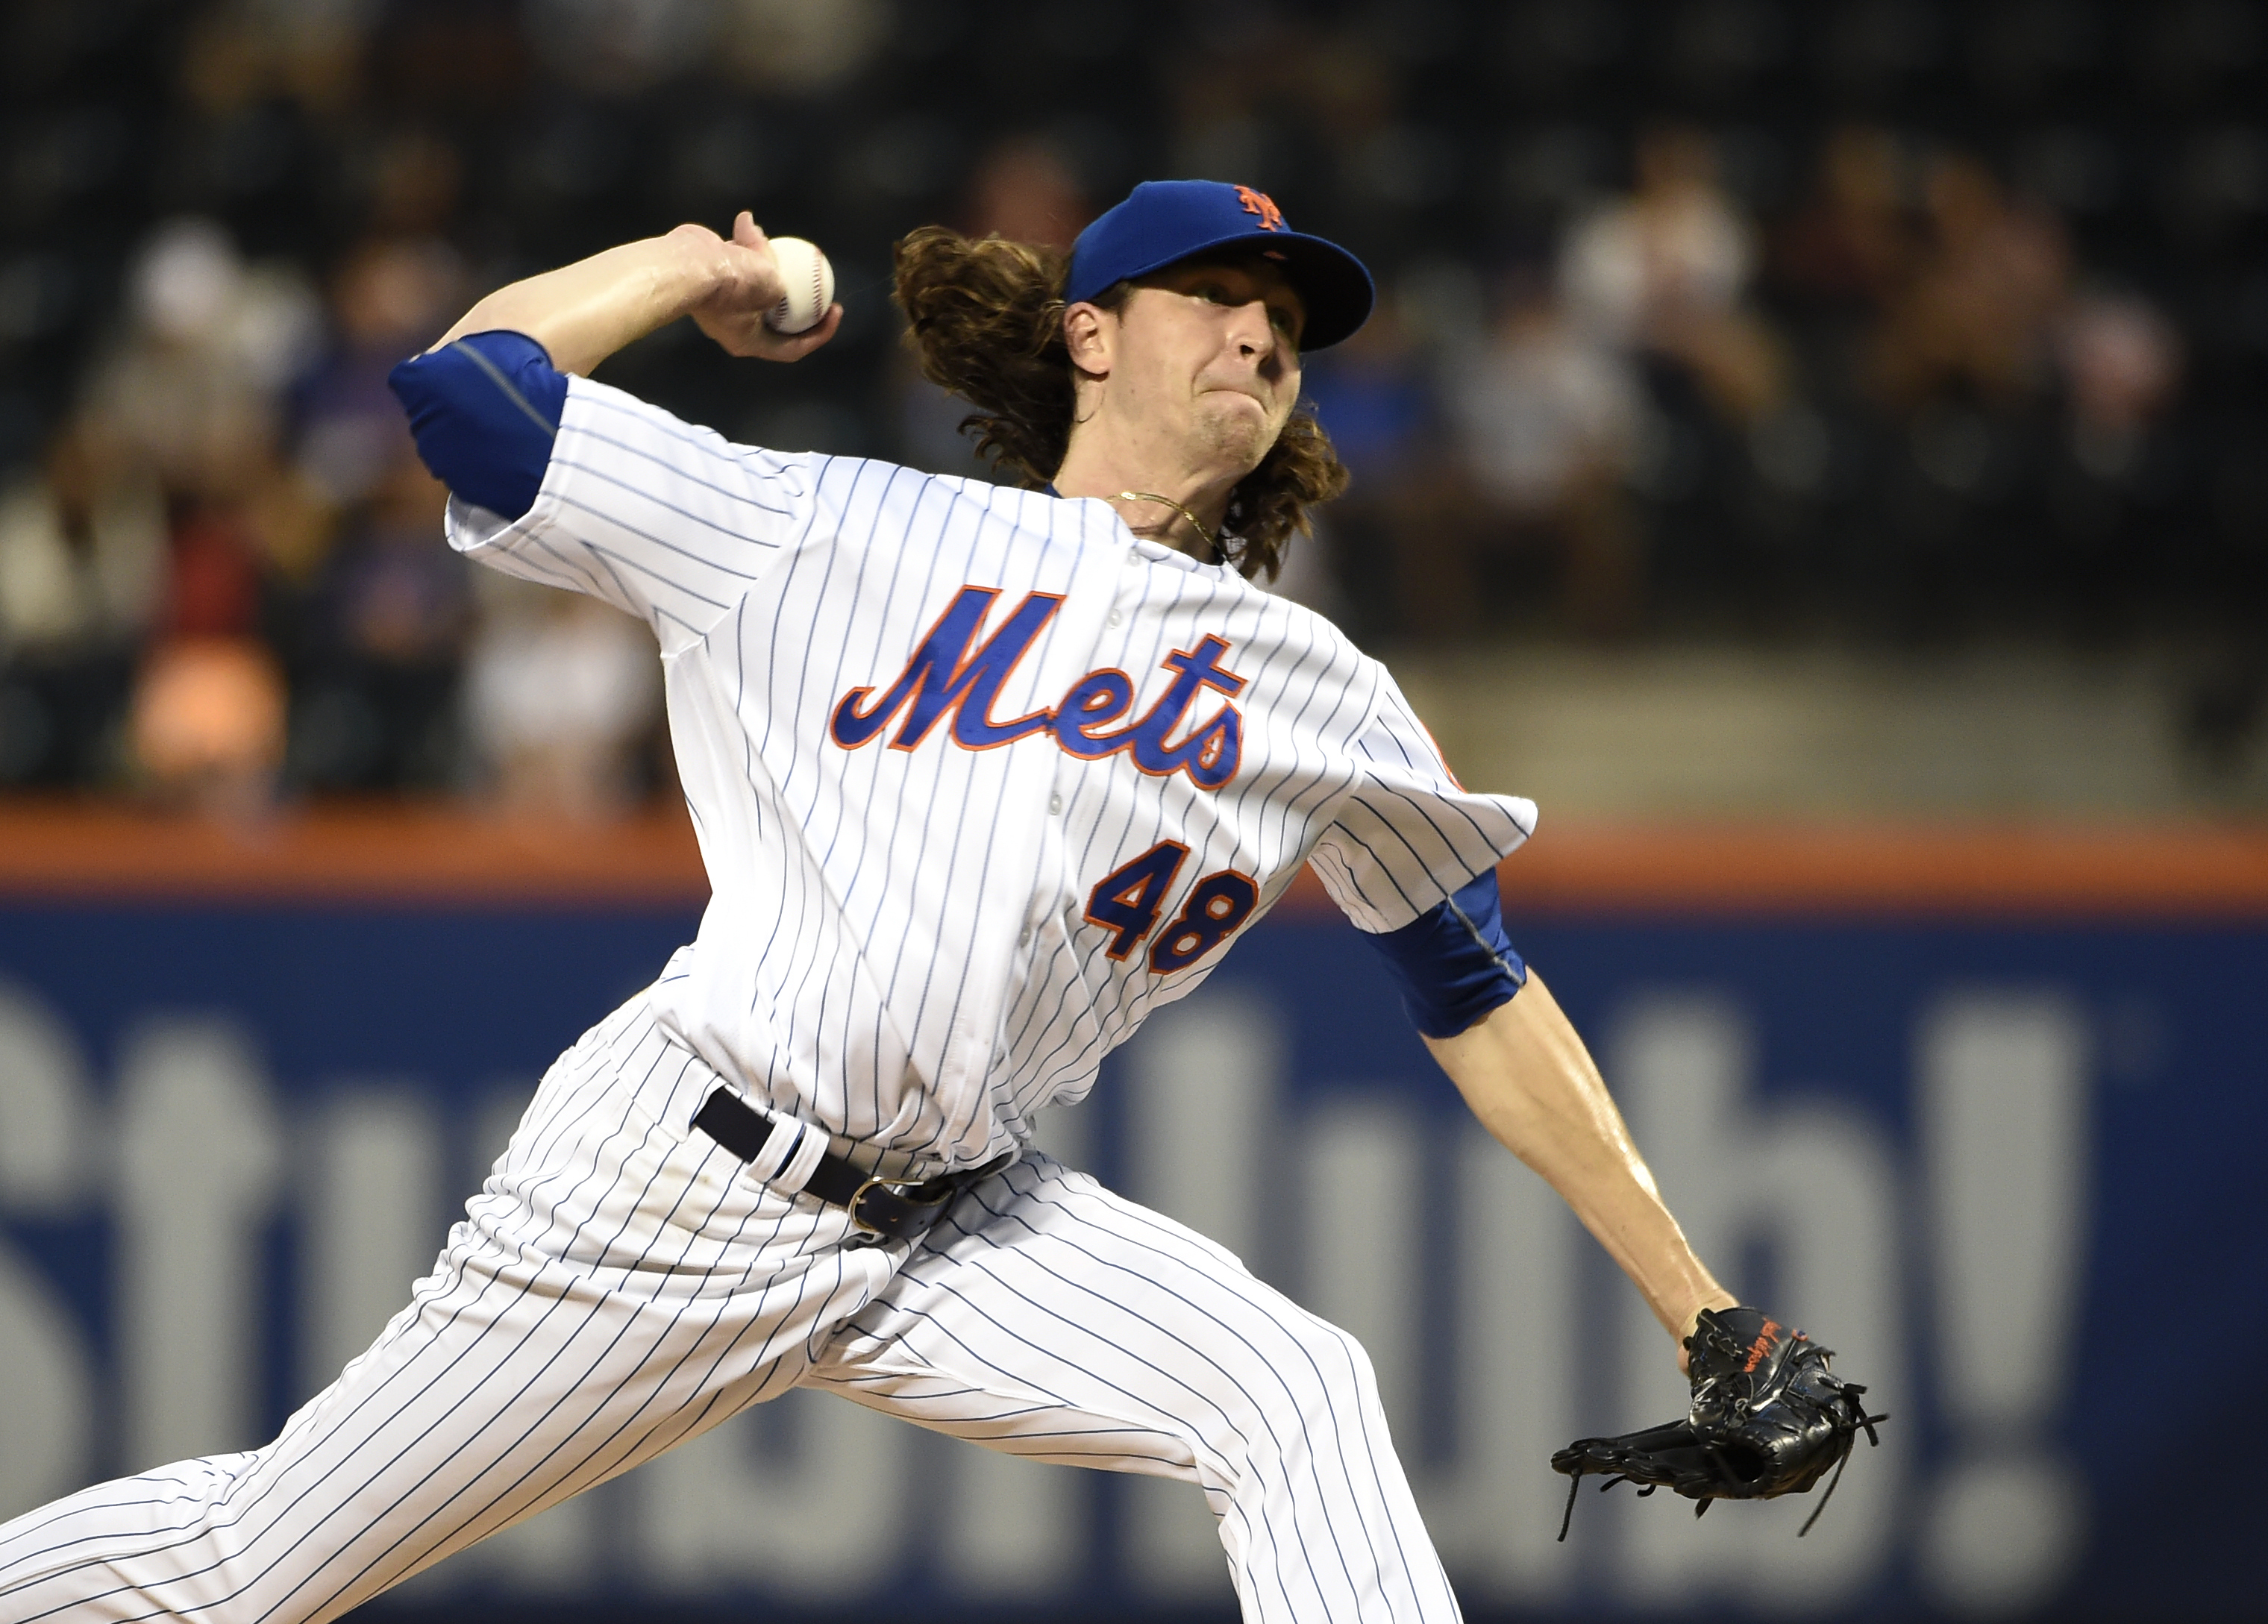 New York Mets starting pitcher Jacob deGrom delivers against the Miami Marlins in the first inning of a baseball game, Thursday, Sept. 1, 2016, in New York. (AP Photo/Kathy Kmonicek)